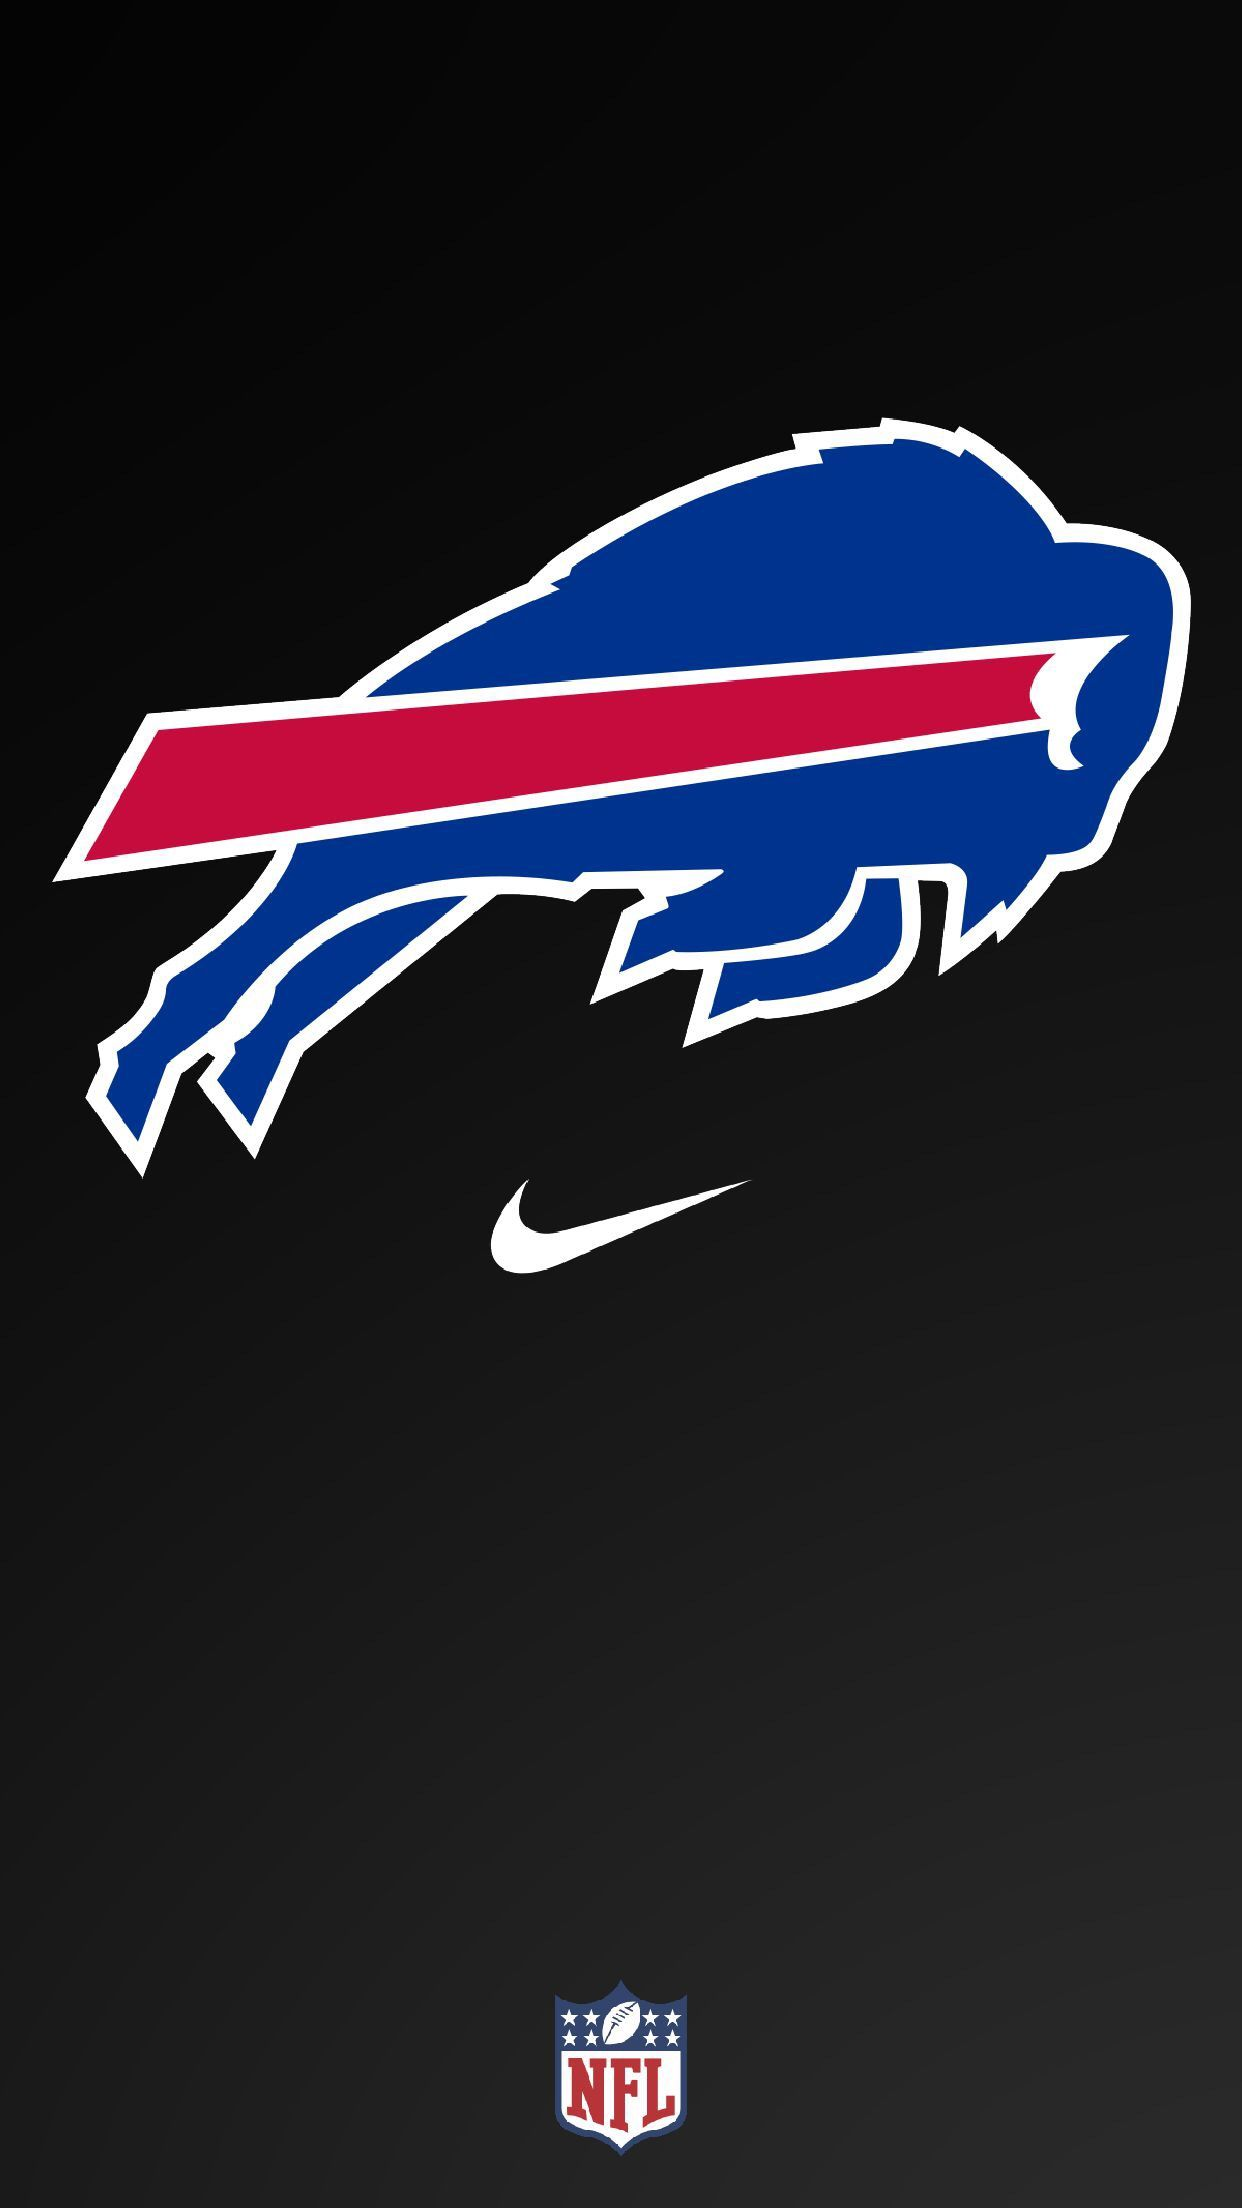 Buffalo Bills Nike Wallpaper Nike Wallpaper Wallpaper Poster